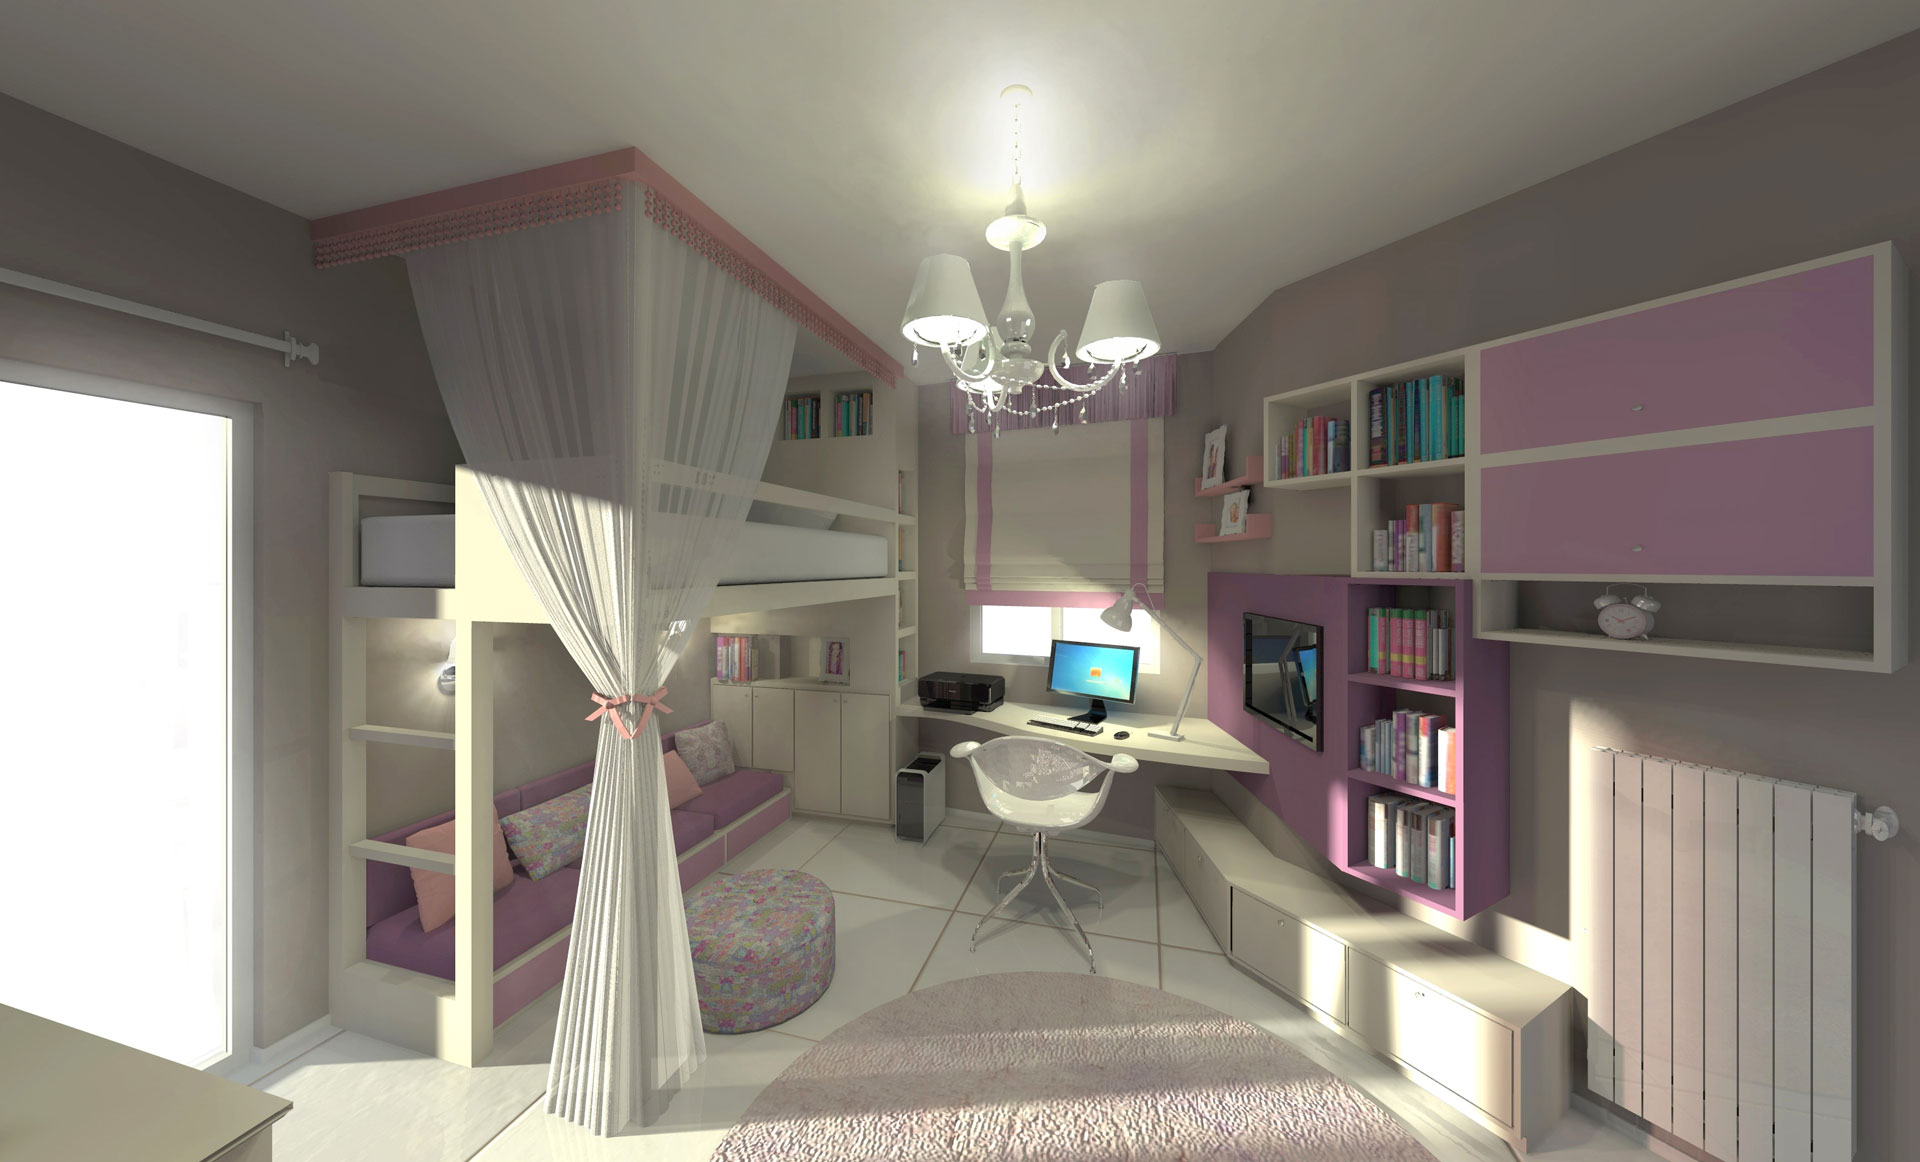 KIDS ROOM - ΛΟΥΤΣΑ ΑΤΤΙΚΗ - KIDS ROOM - LOUTSA - ATTIKI